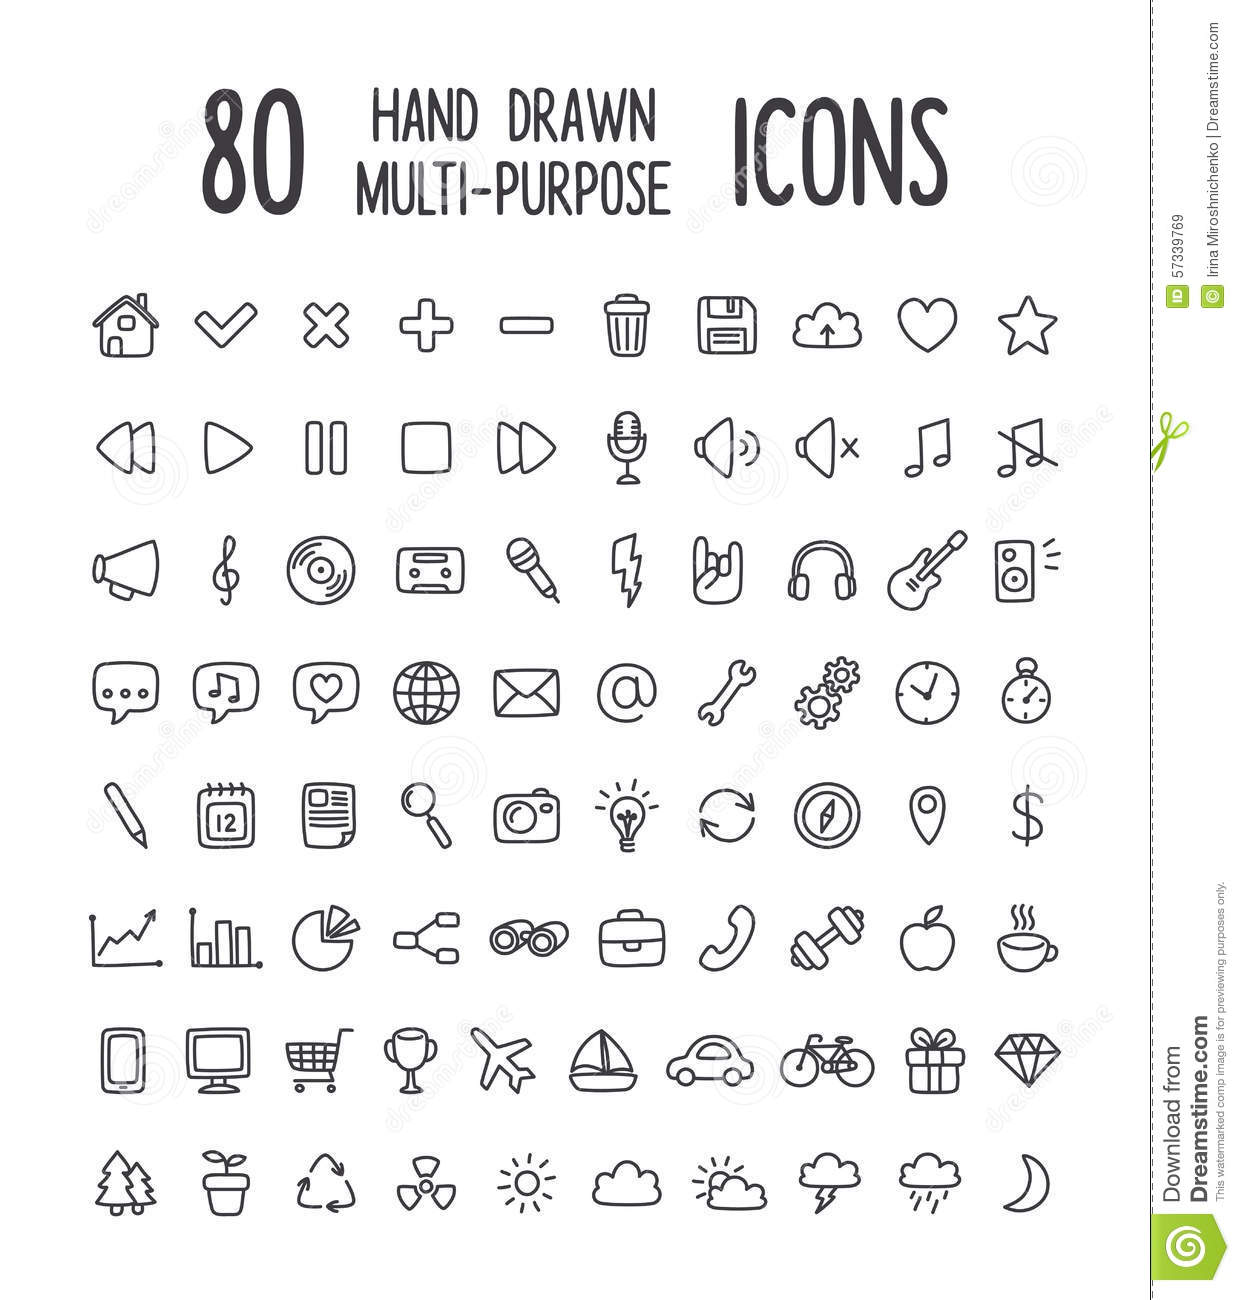 Hand Drawing Line Icons : Hand drawn icons stock vector illustration of computer